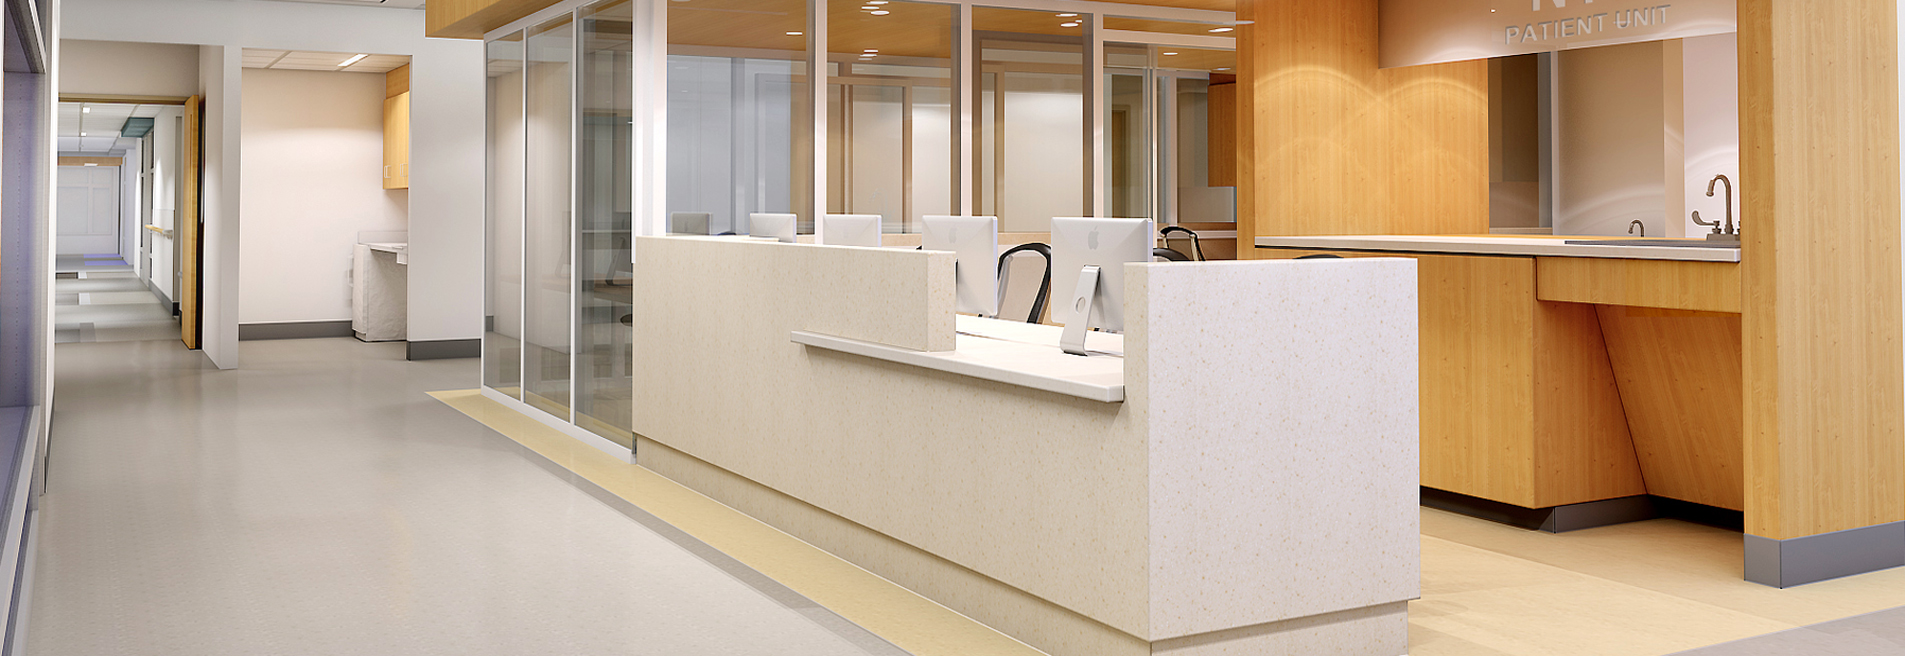 Reception Furniture by cubicles.com